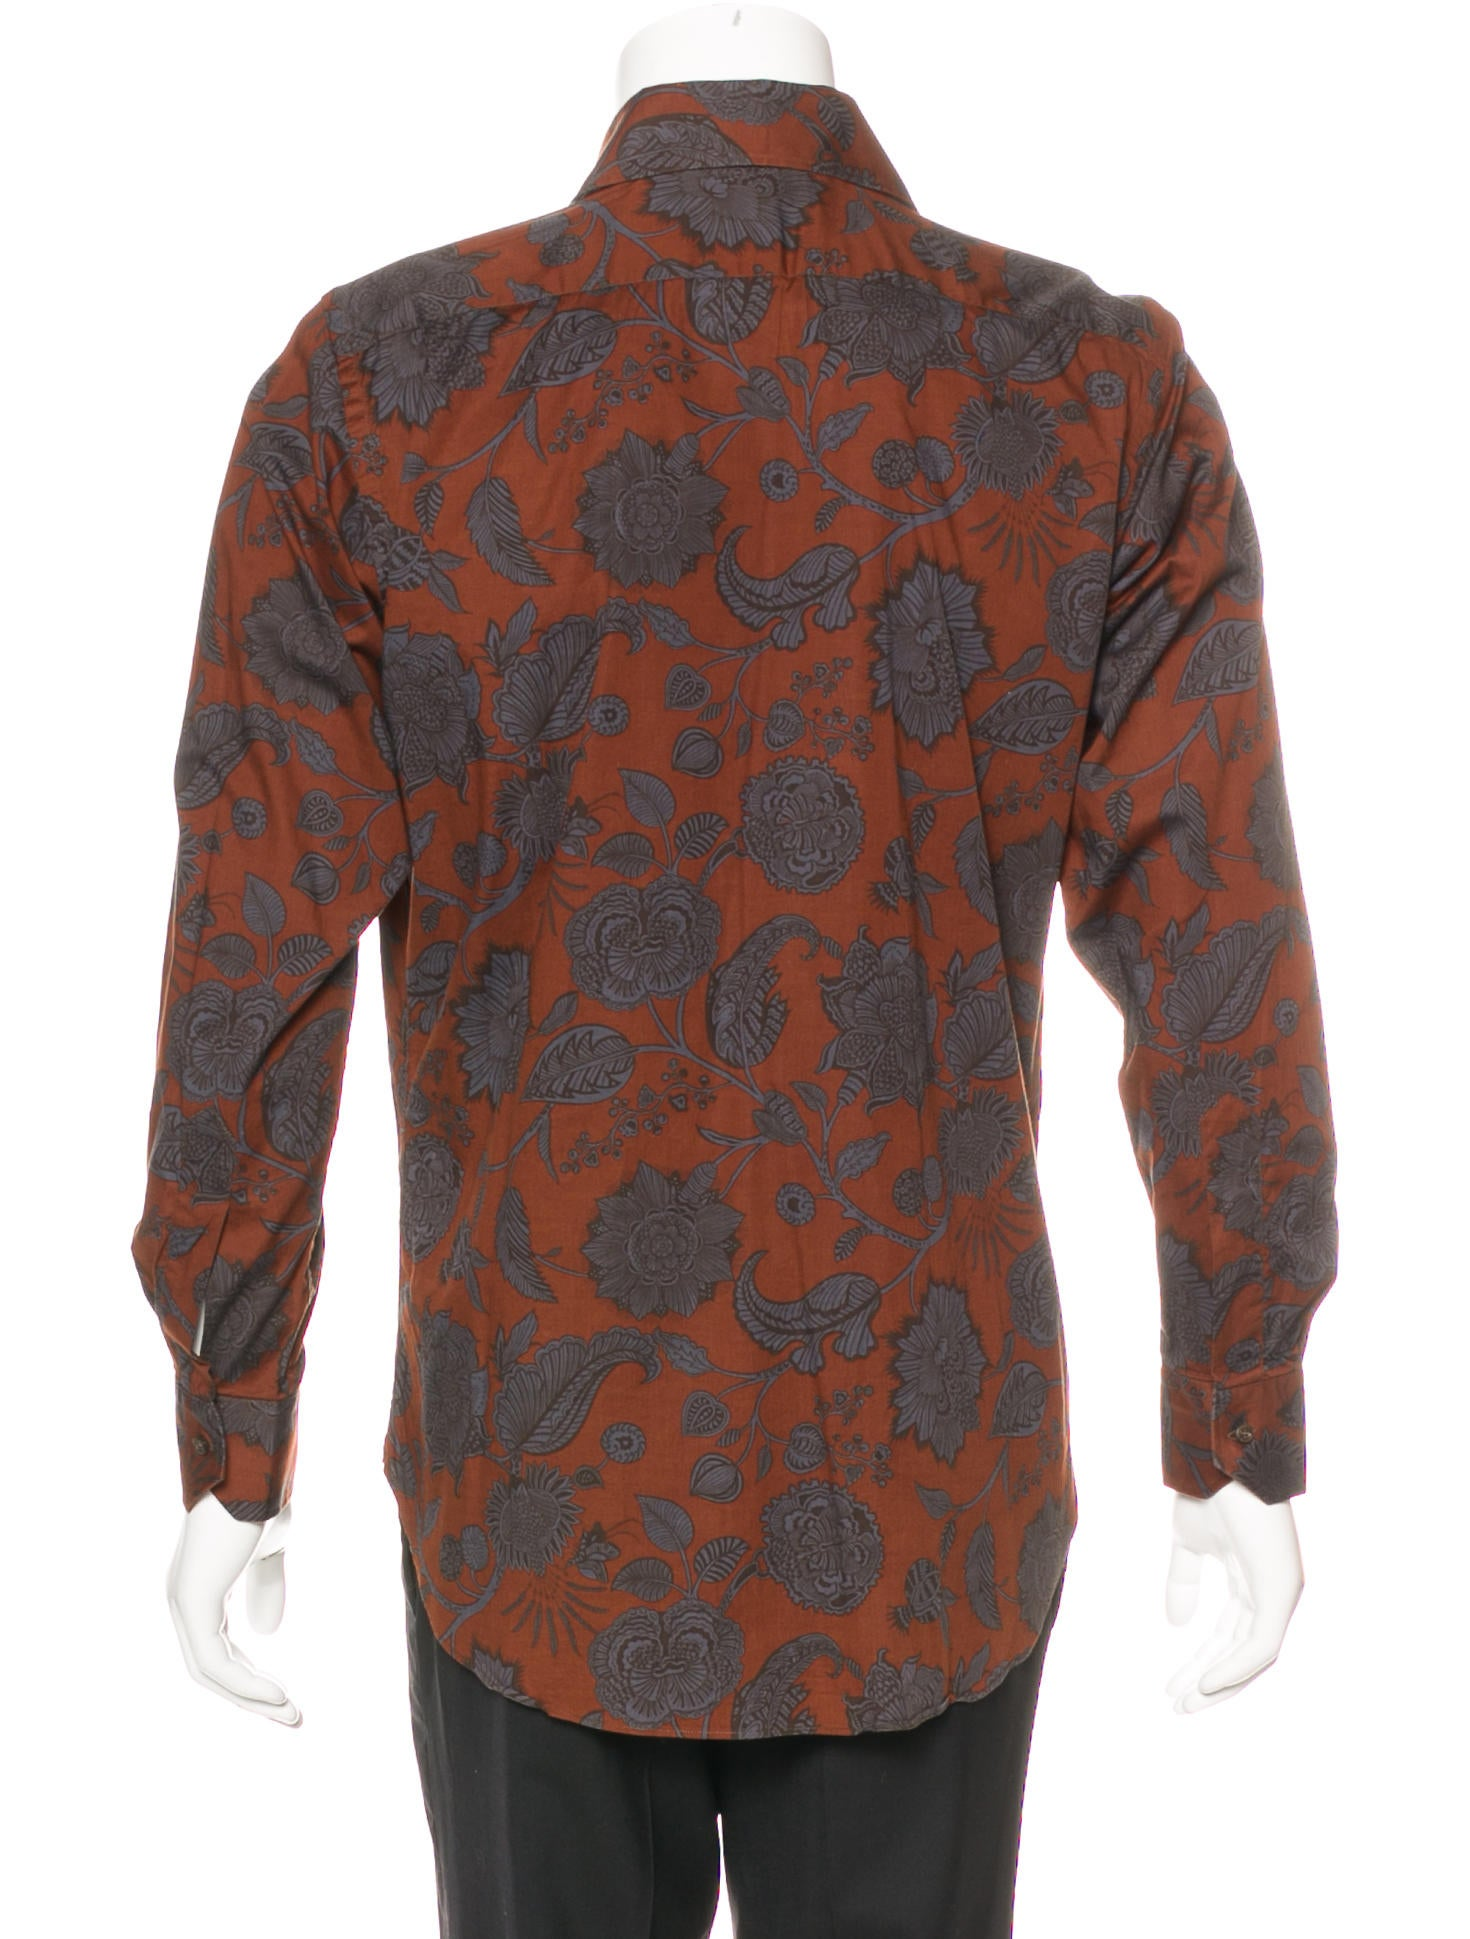 Etro floral print button up shirt clothing etr50286 for Floral print button up shirt